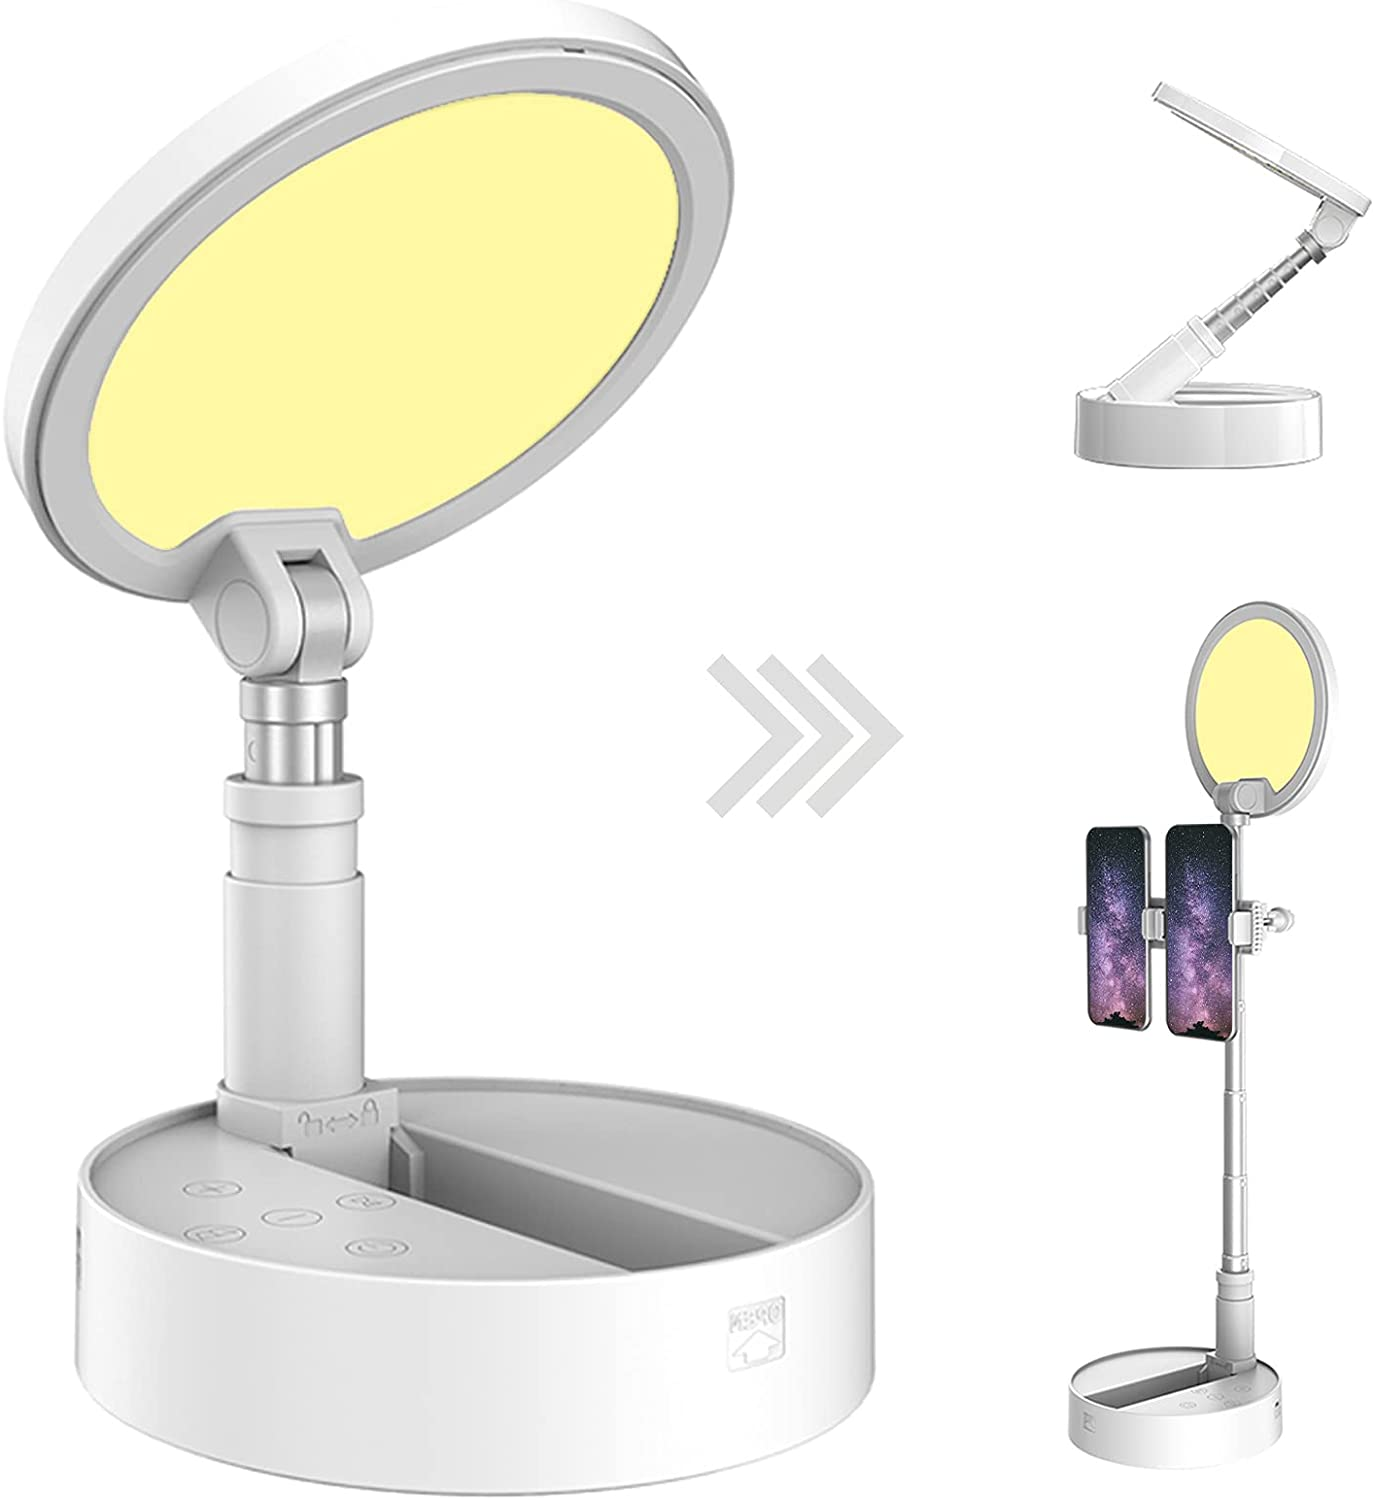 Foldable Selfie Ring Light Mail order cheap Max 81% OFF Makeup Tablet with Phone